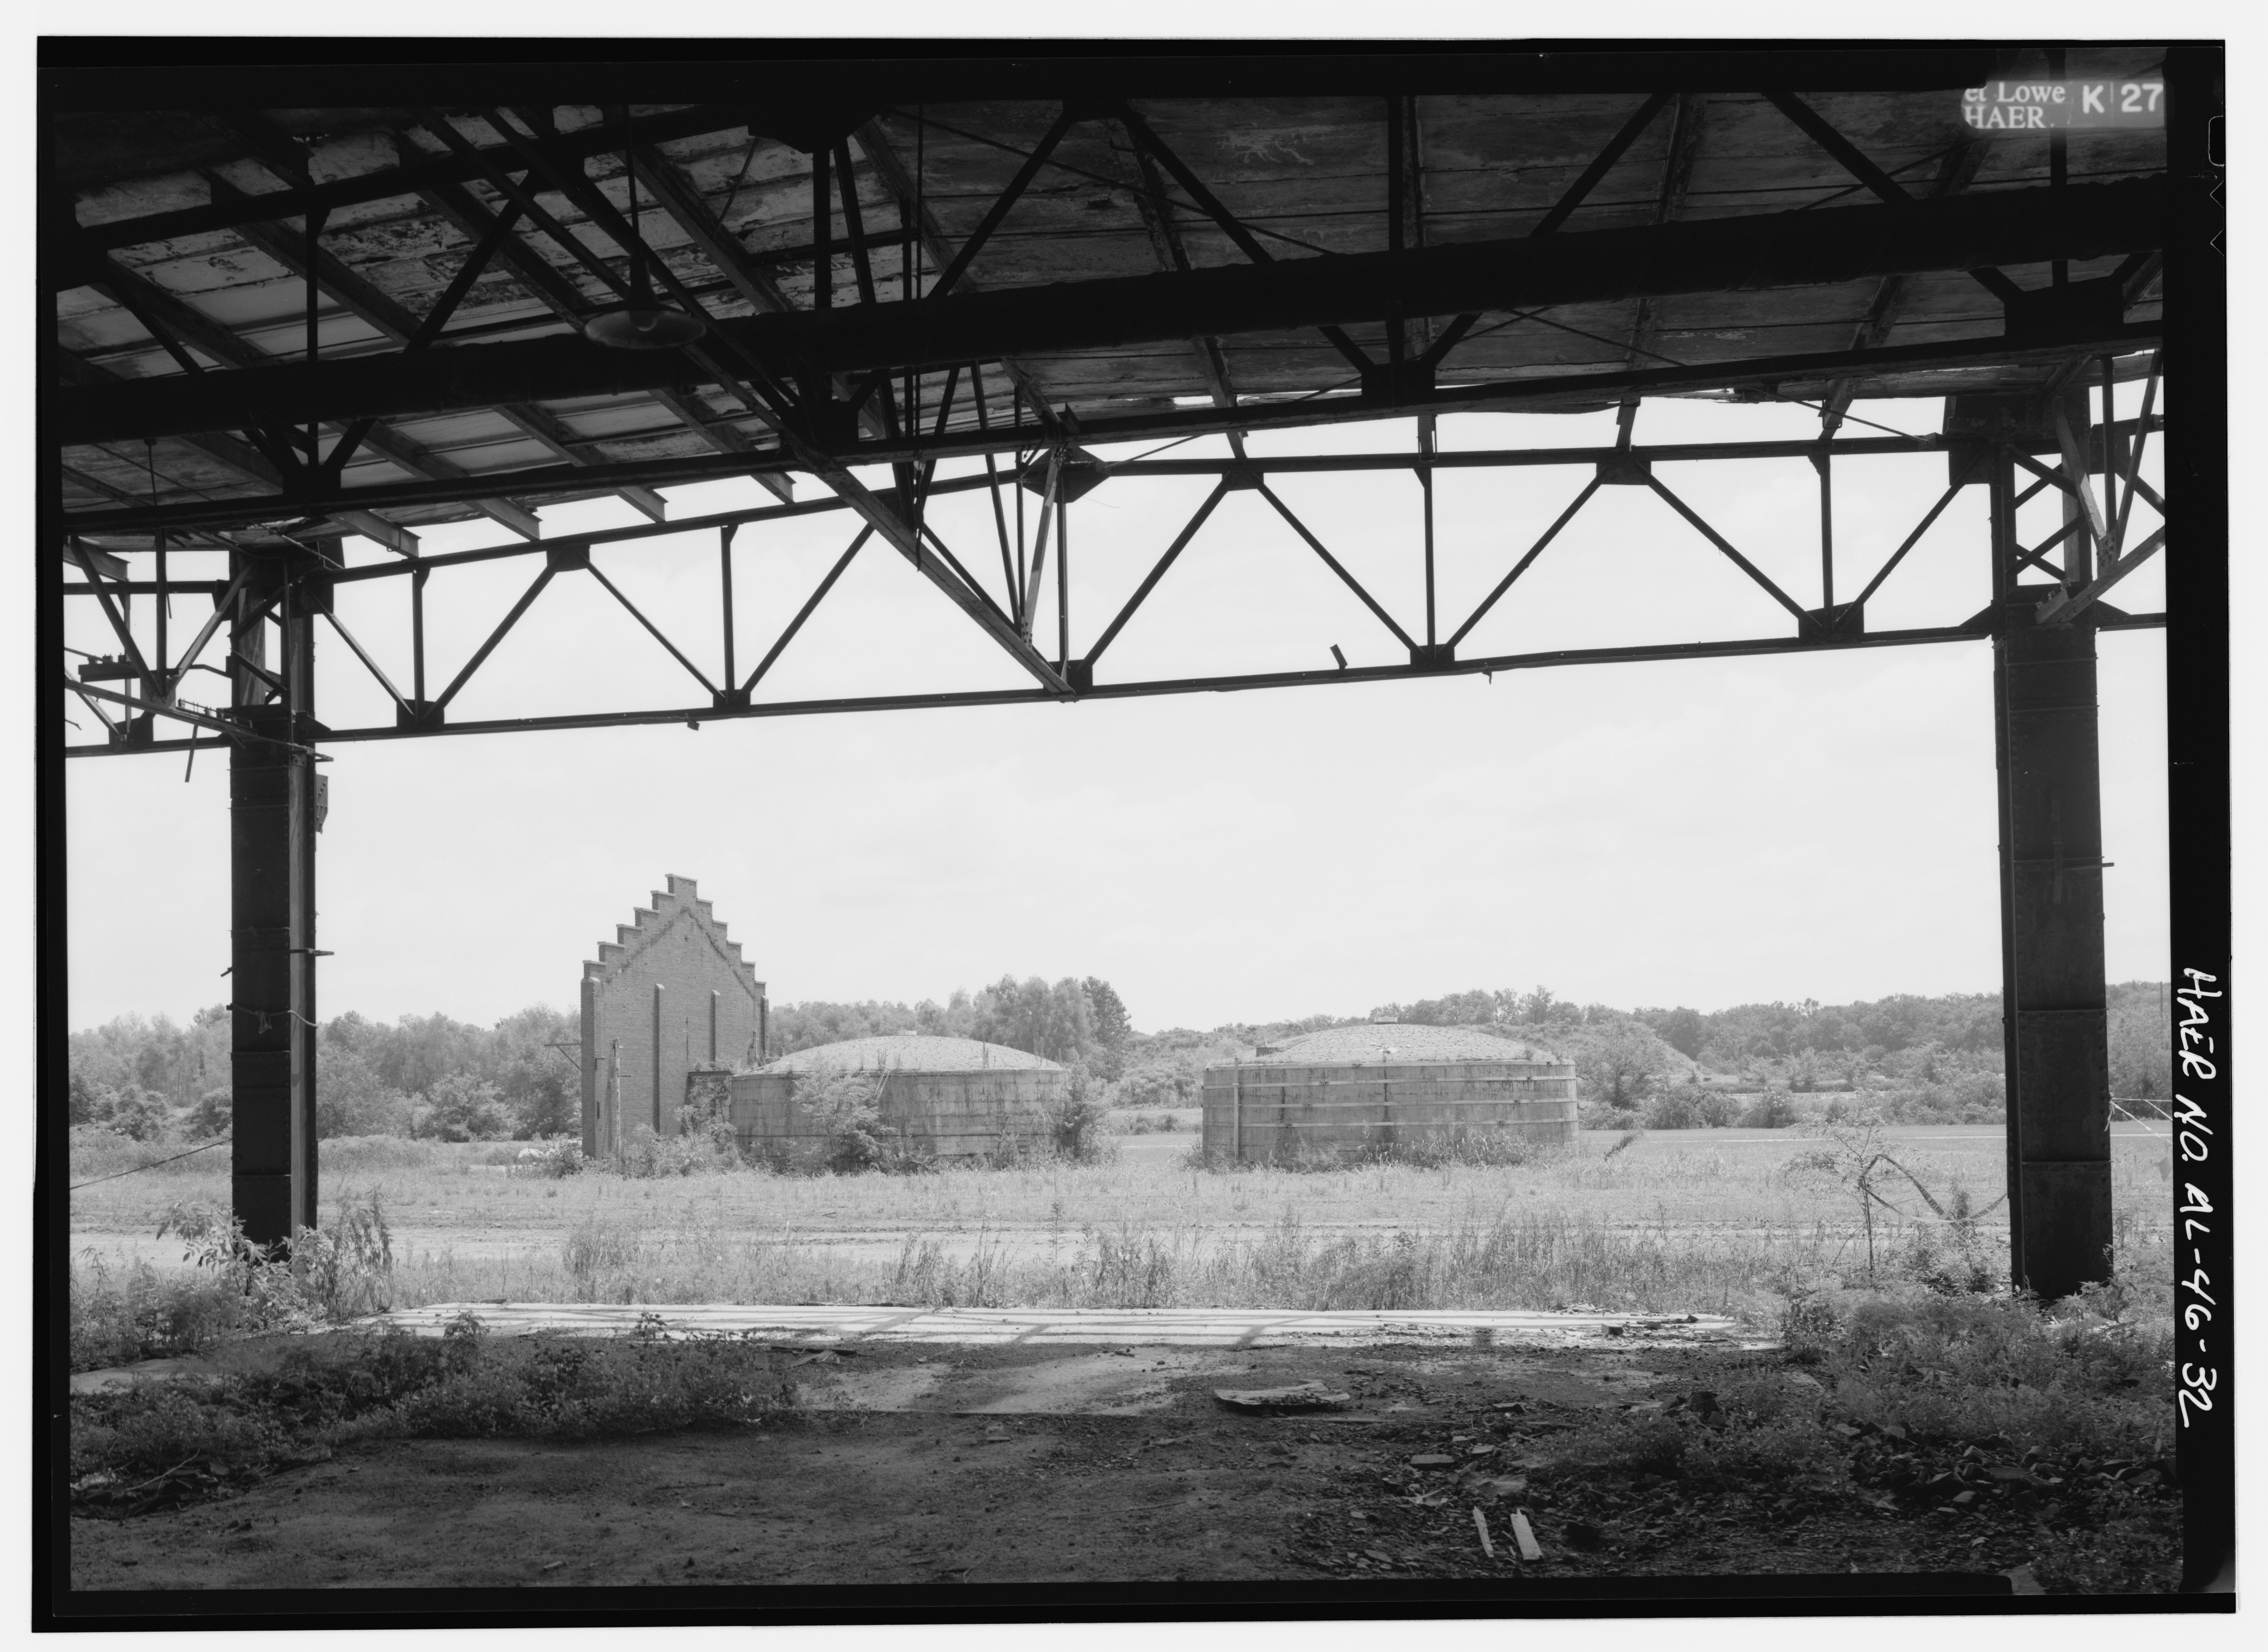 Muscle Shoals (AL) United States  city pictures gallery : Original file  5,000 × 3,643 pixels, file size: 17.37 MB, MIME ...